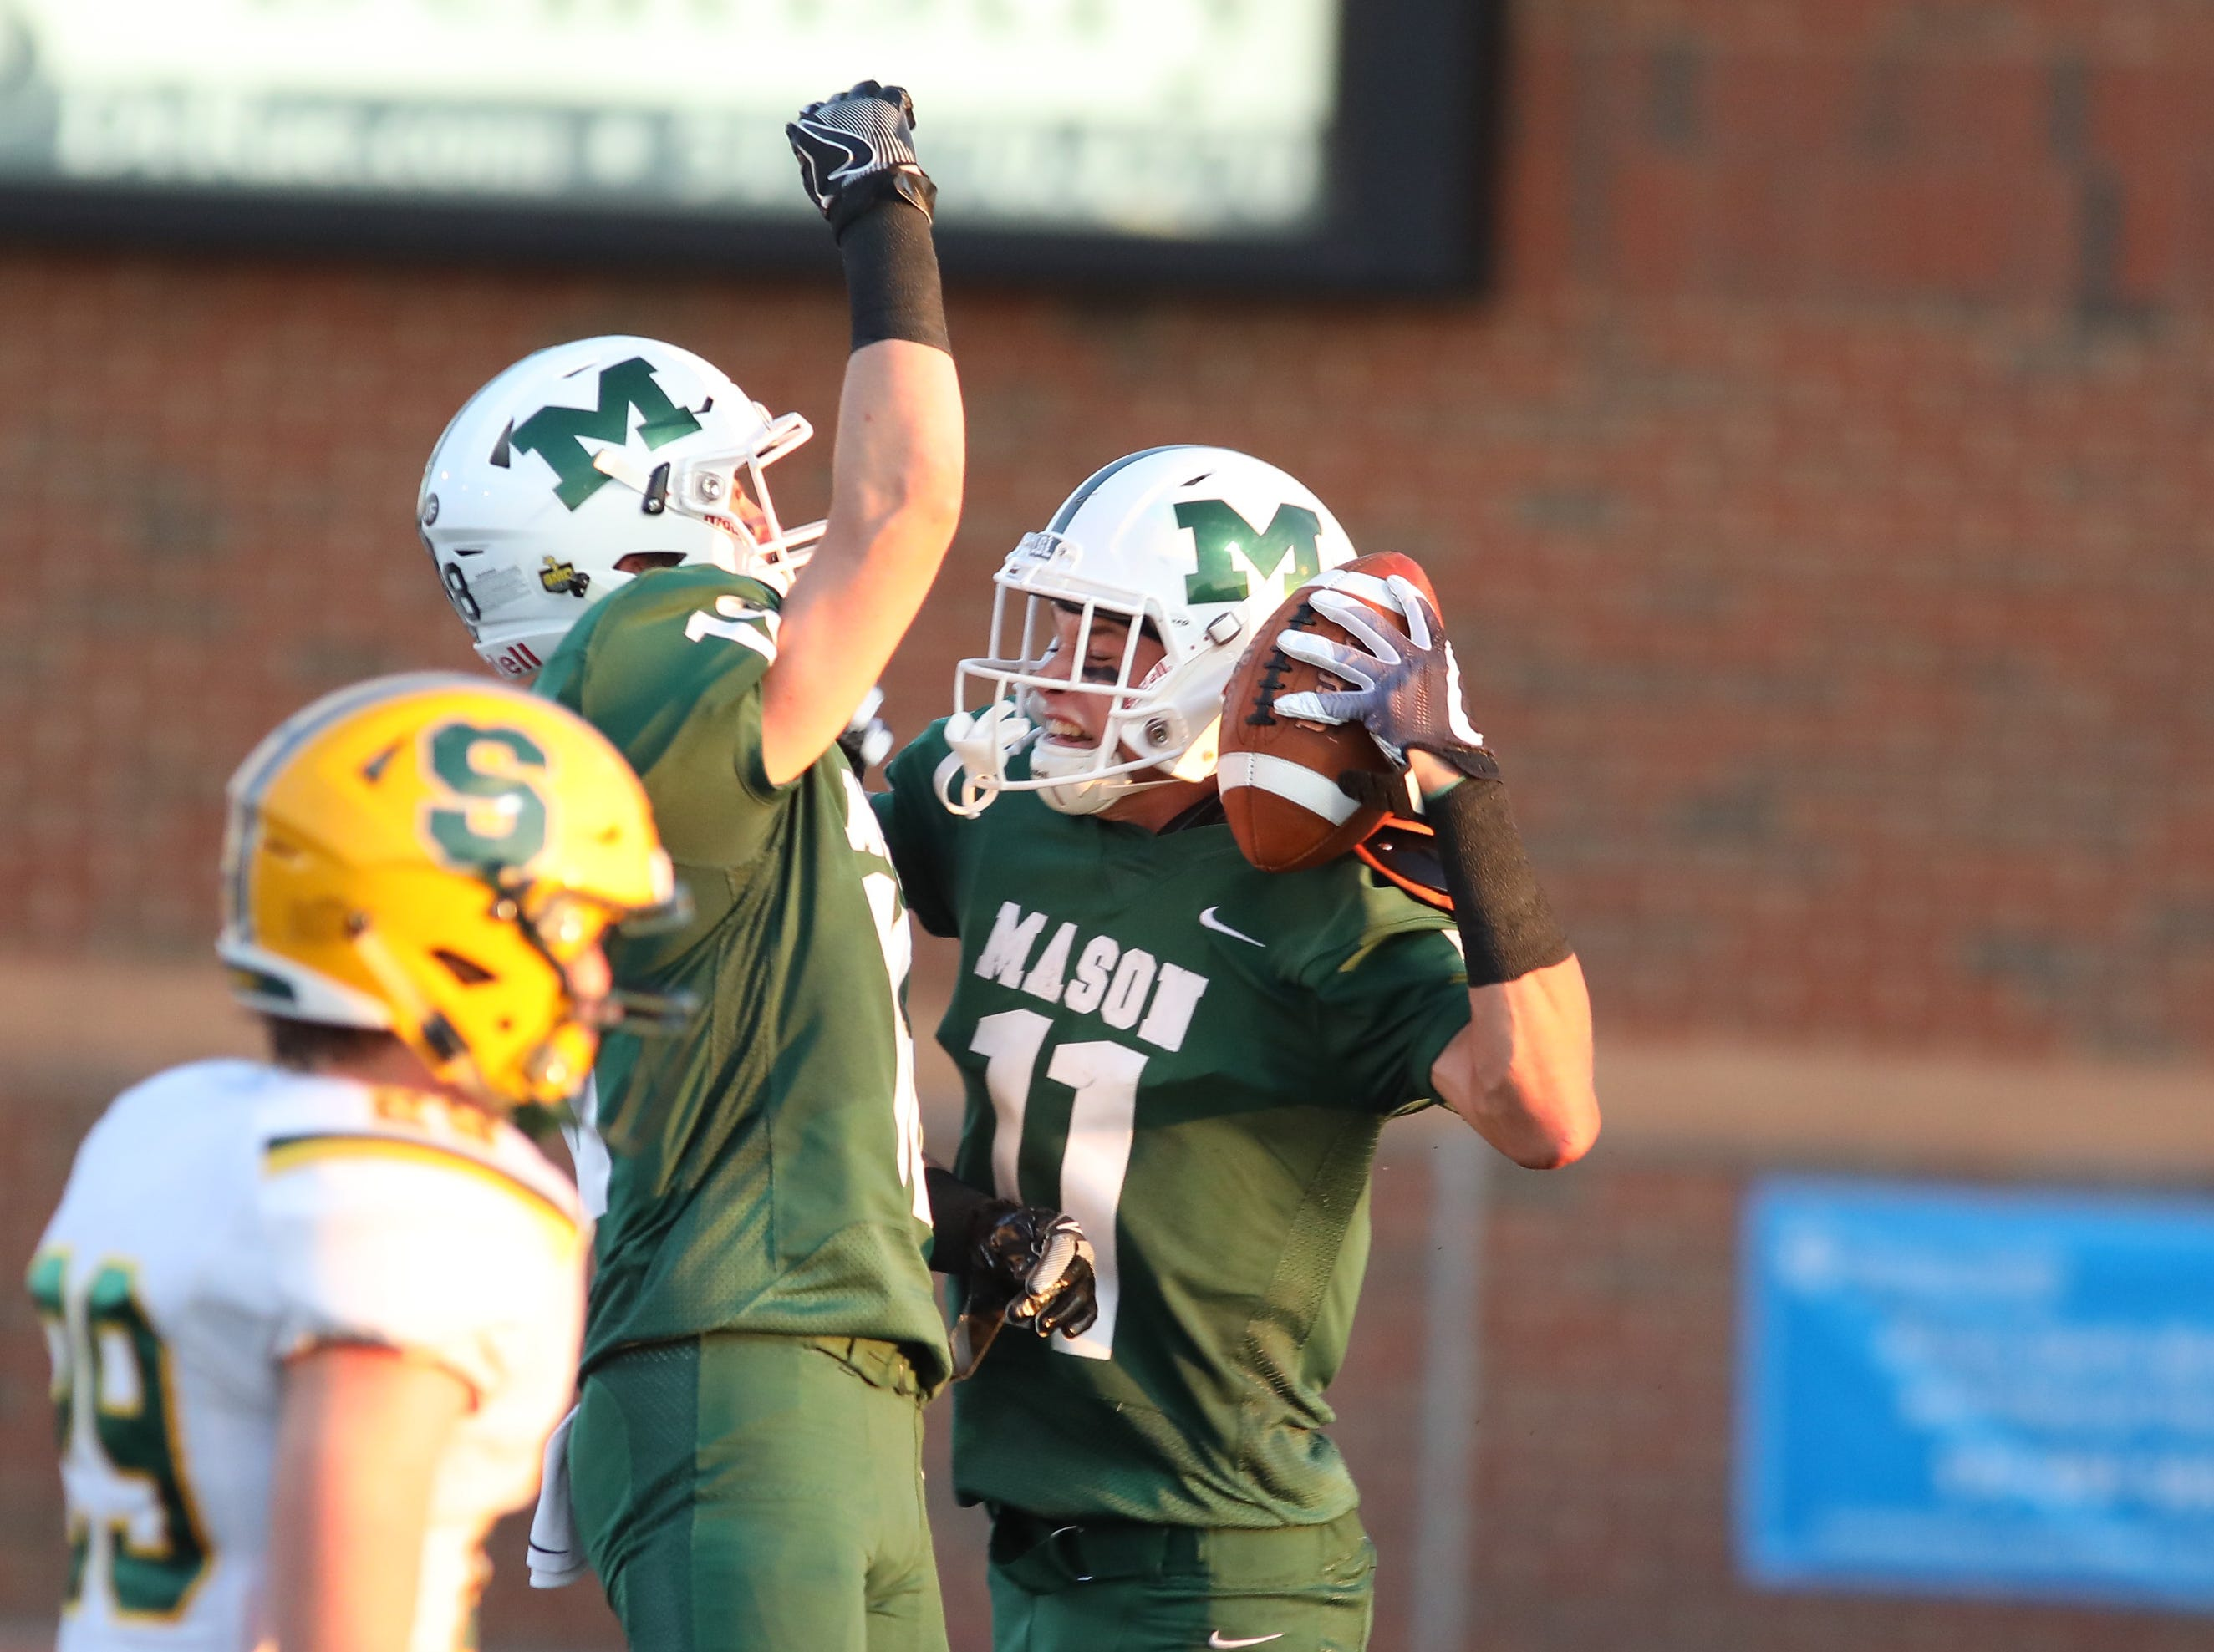 Mason's Nick Niehoff celebrates after scoring a touchdown during the football game against Sycamore, Friday, Sept. 14, 2018.